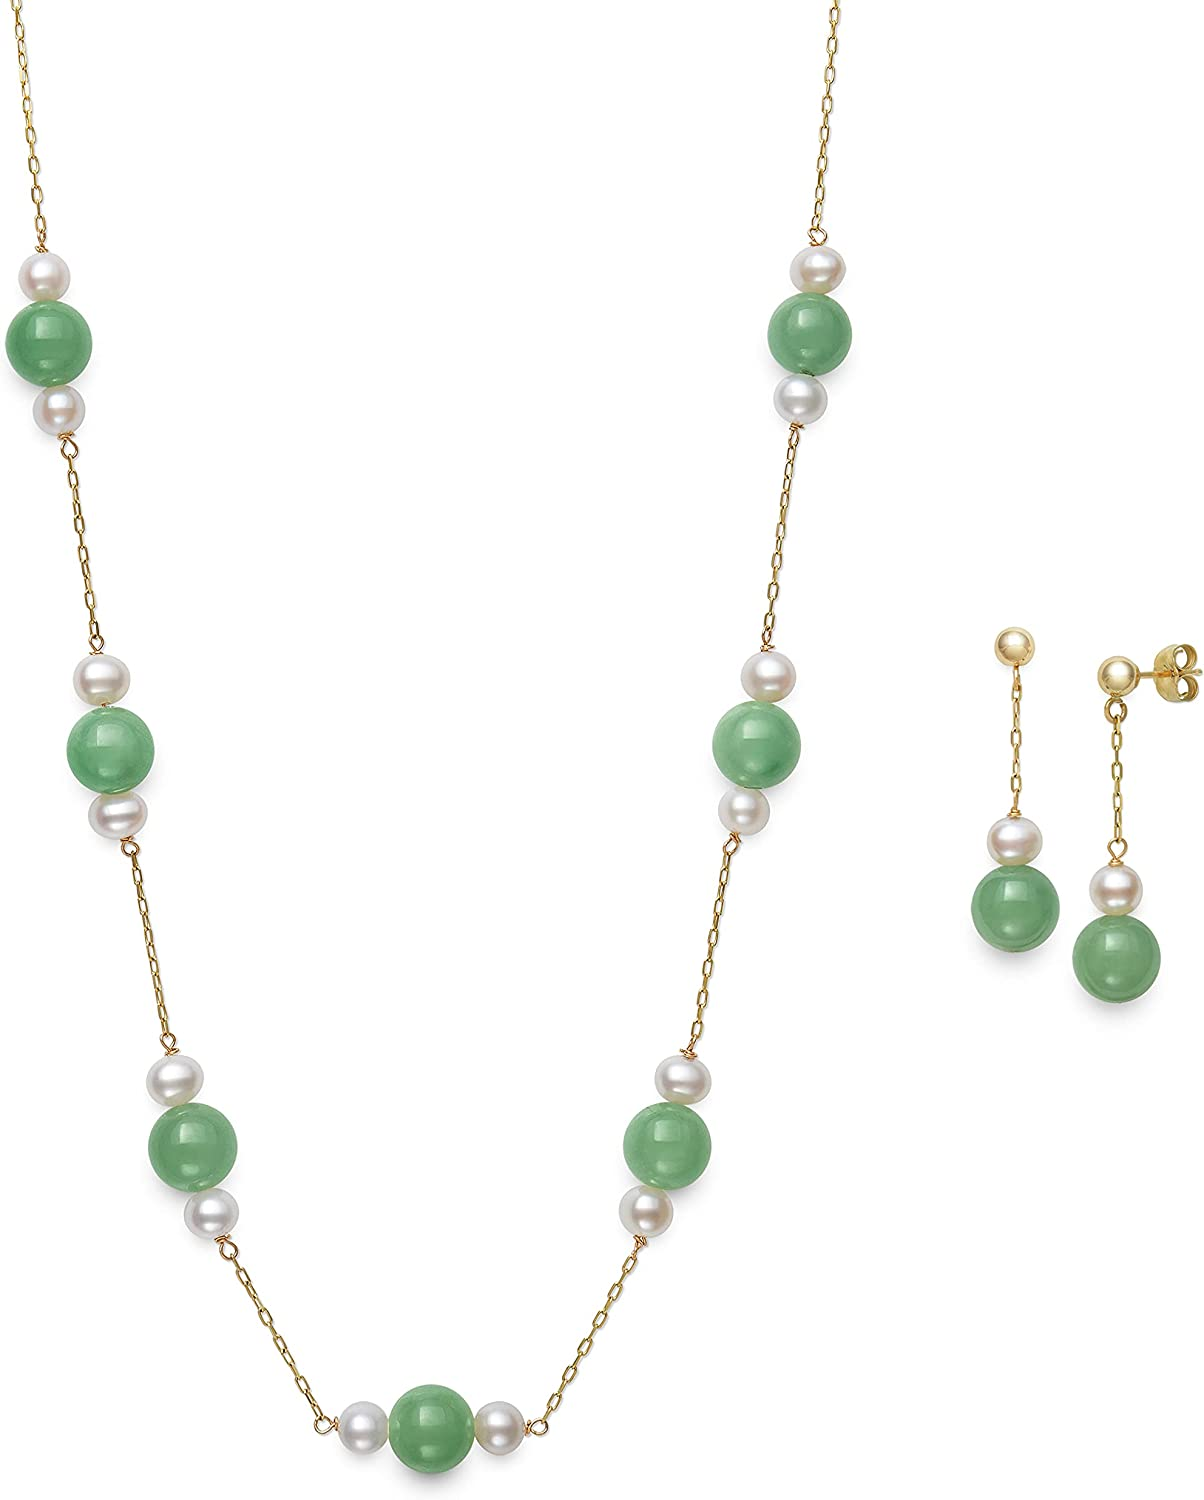 10K Yellow Gold Jade and Cultured Freshwater Pearl Necklace Earring Set